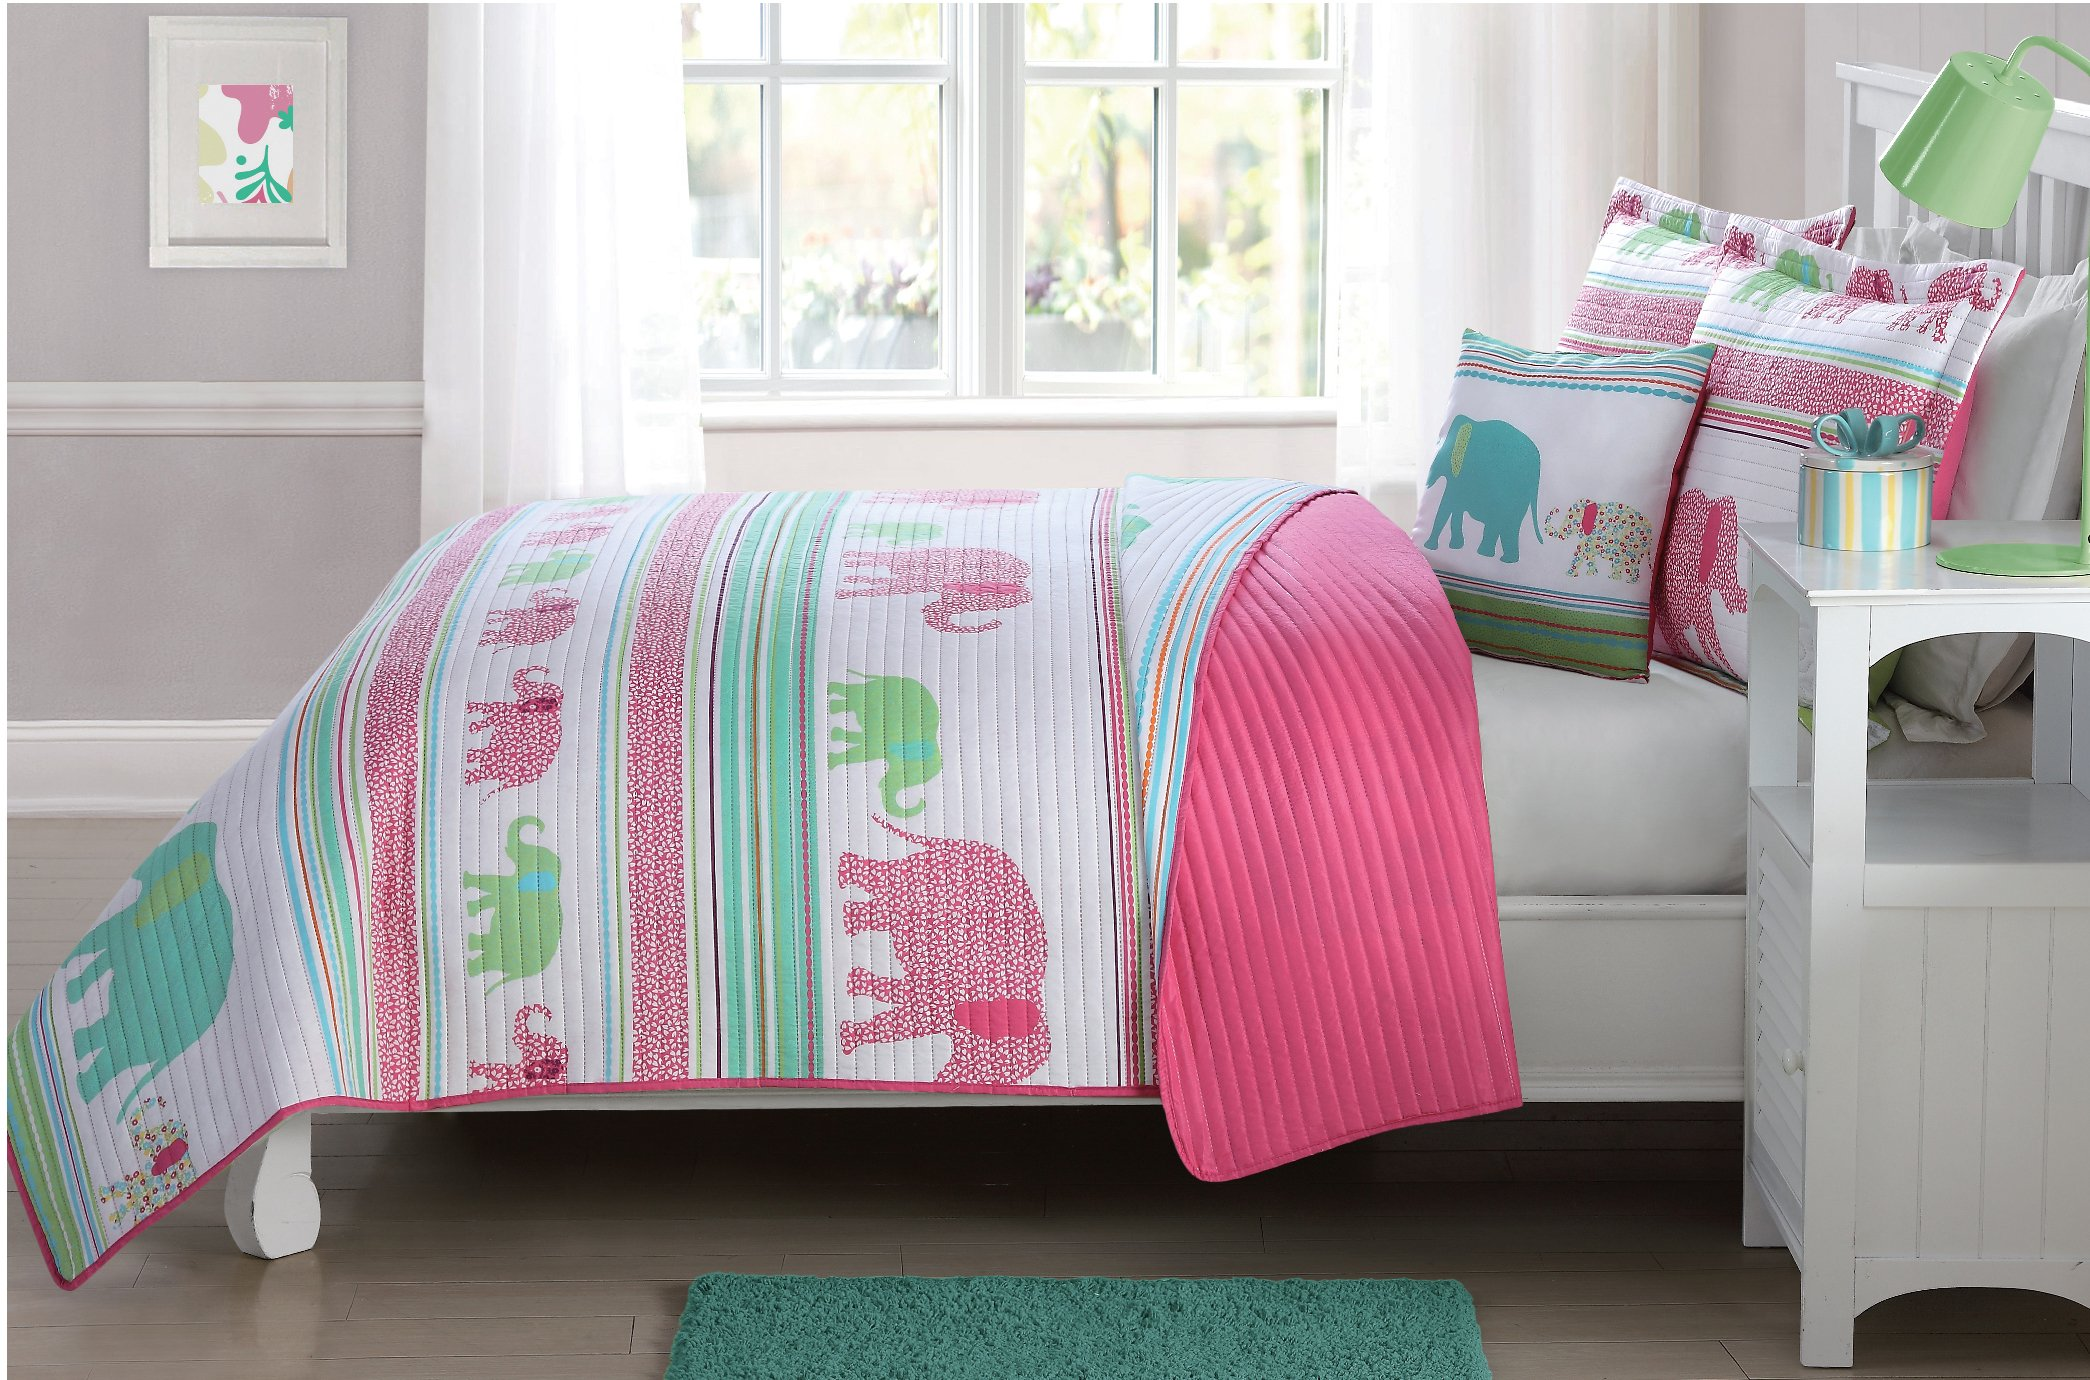 Elegant Home Multicolor Pink White Green Blue Fun Elephants Design Striped Printed Reversible Cozy Colorful 4 Piece Quilt Bedspread Set with Decorative Pillow for Kids / Girls (Full)